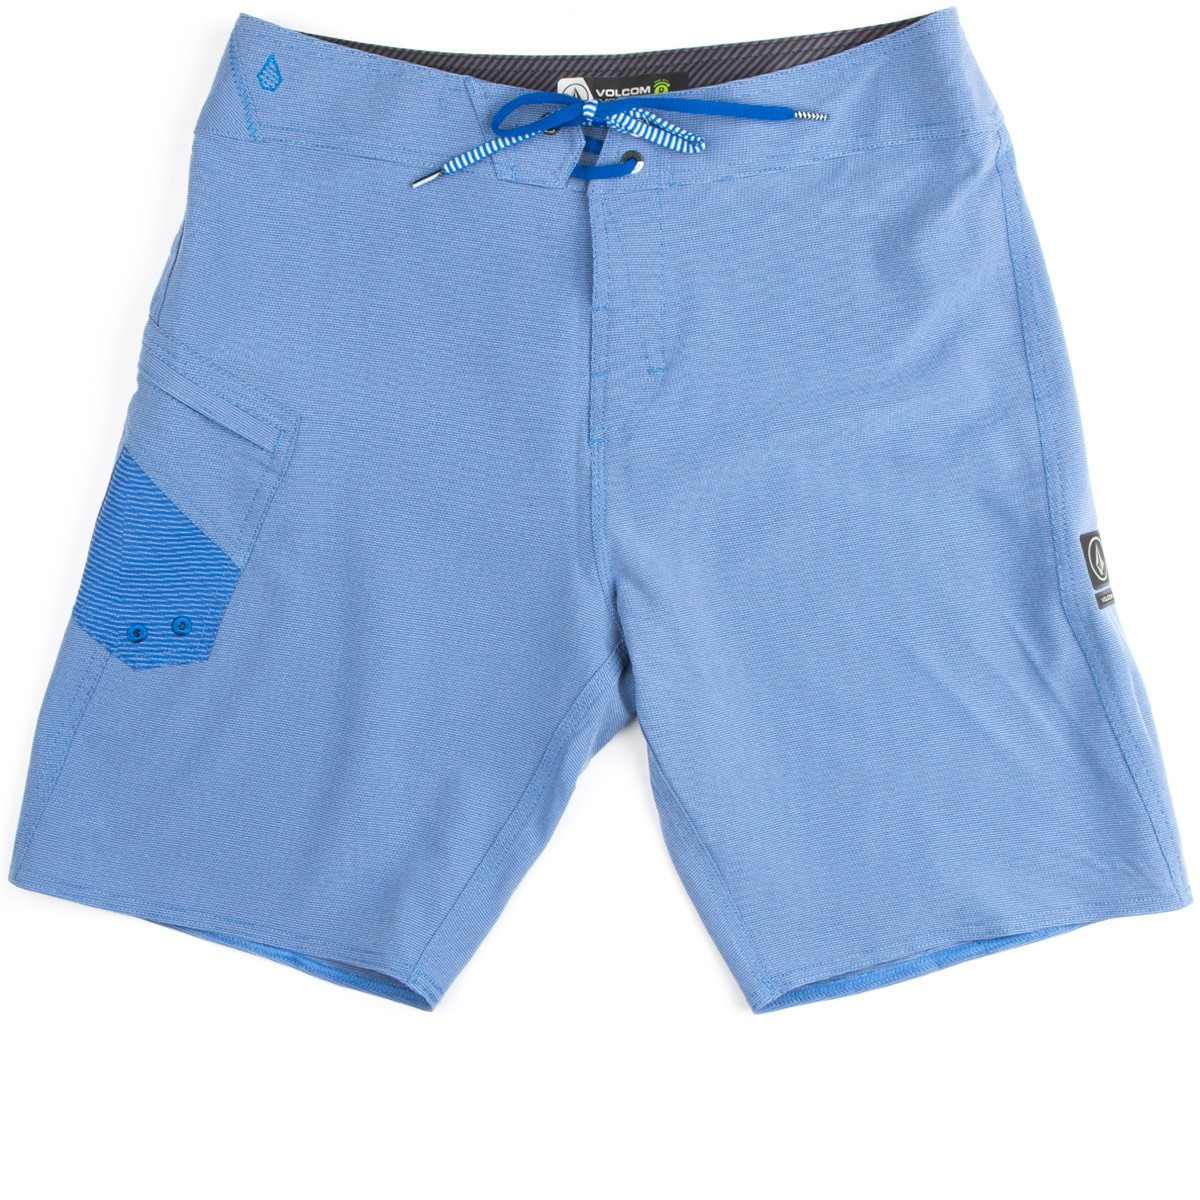 Volcom Lido Heather Modern Boardshorts - Estate Blue